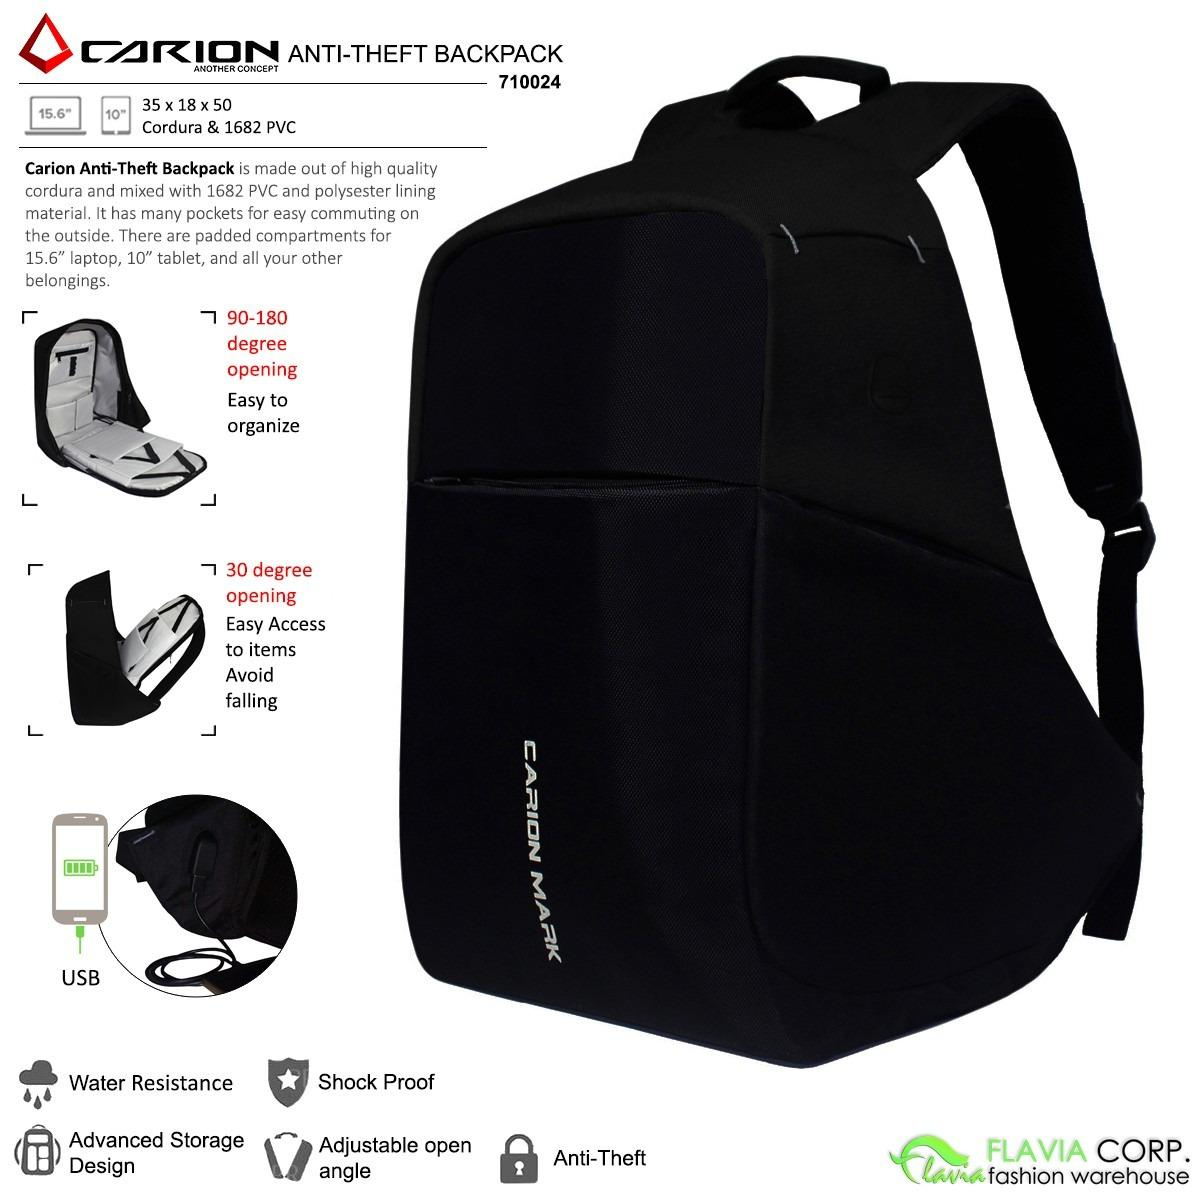 Harga Tas Ransel Laptop Anti Maling Smart Anti Theft Backpack 710024 Paling Murah